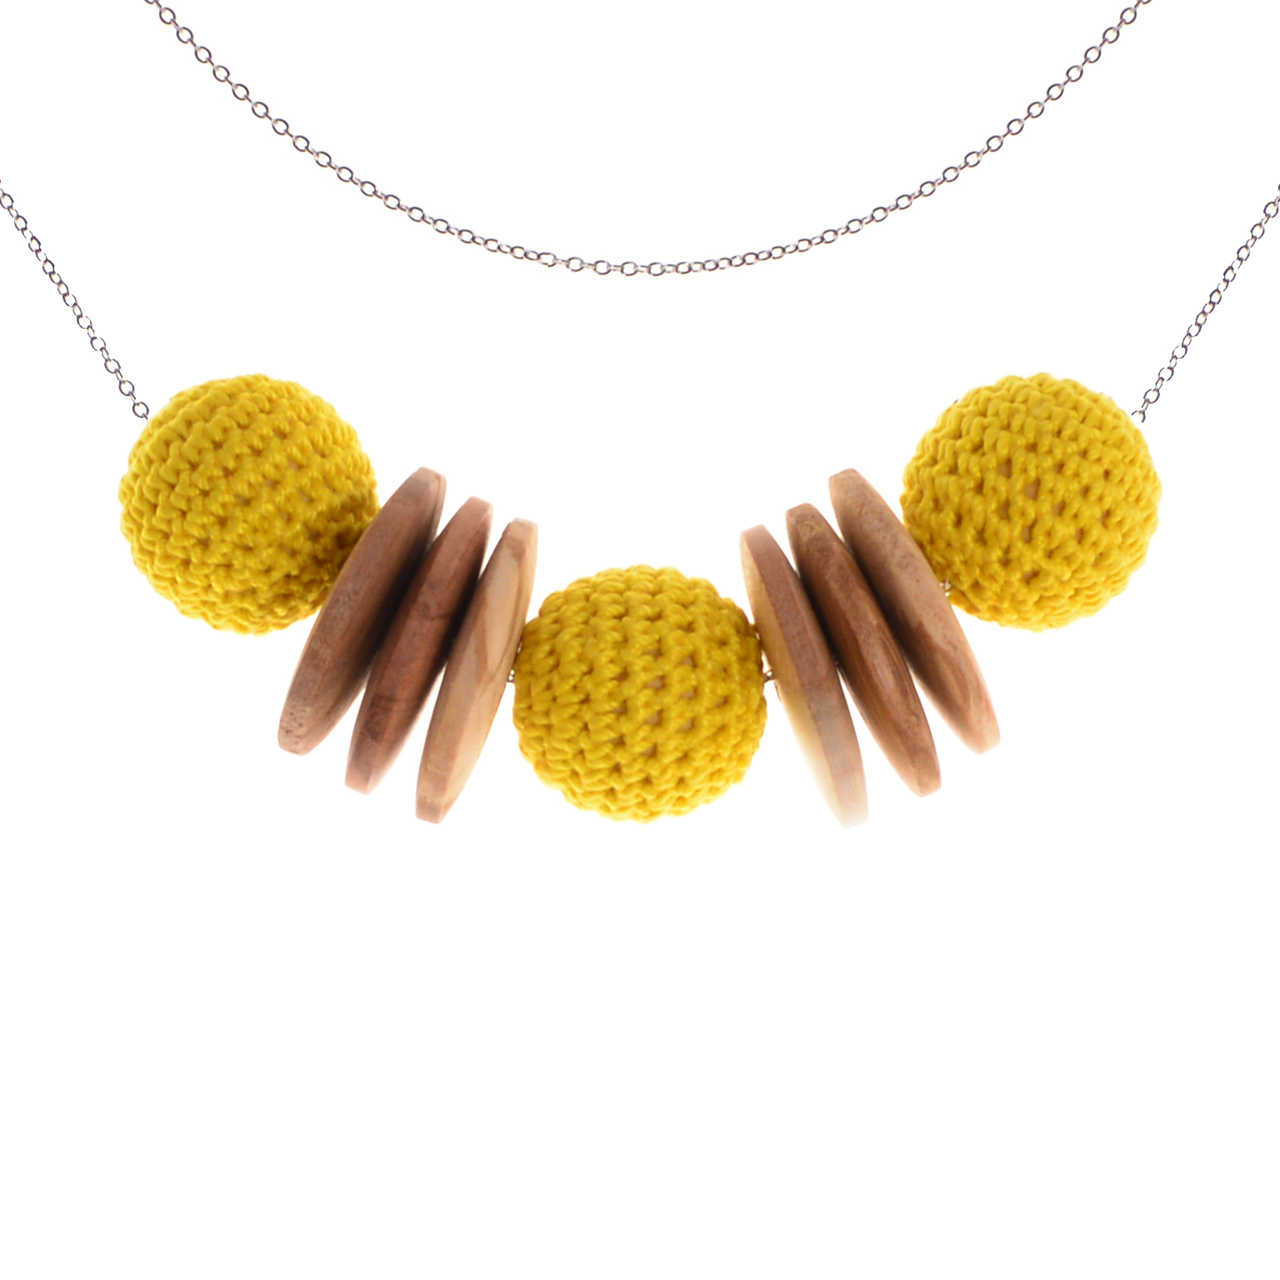 Mon Bijou - Necklace Elegance Nature - Yellow | The Design Gift Shop